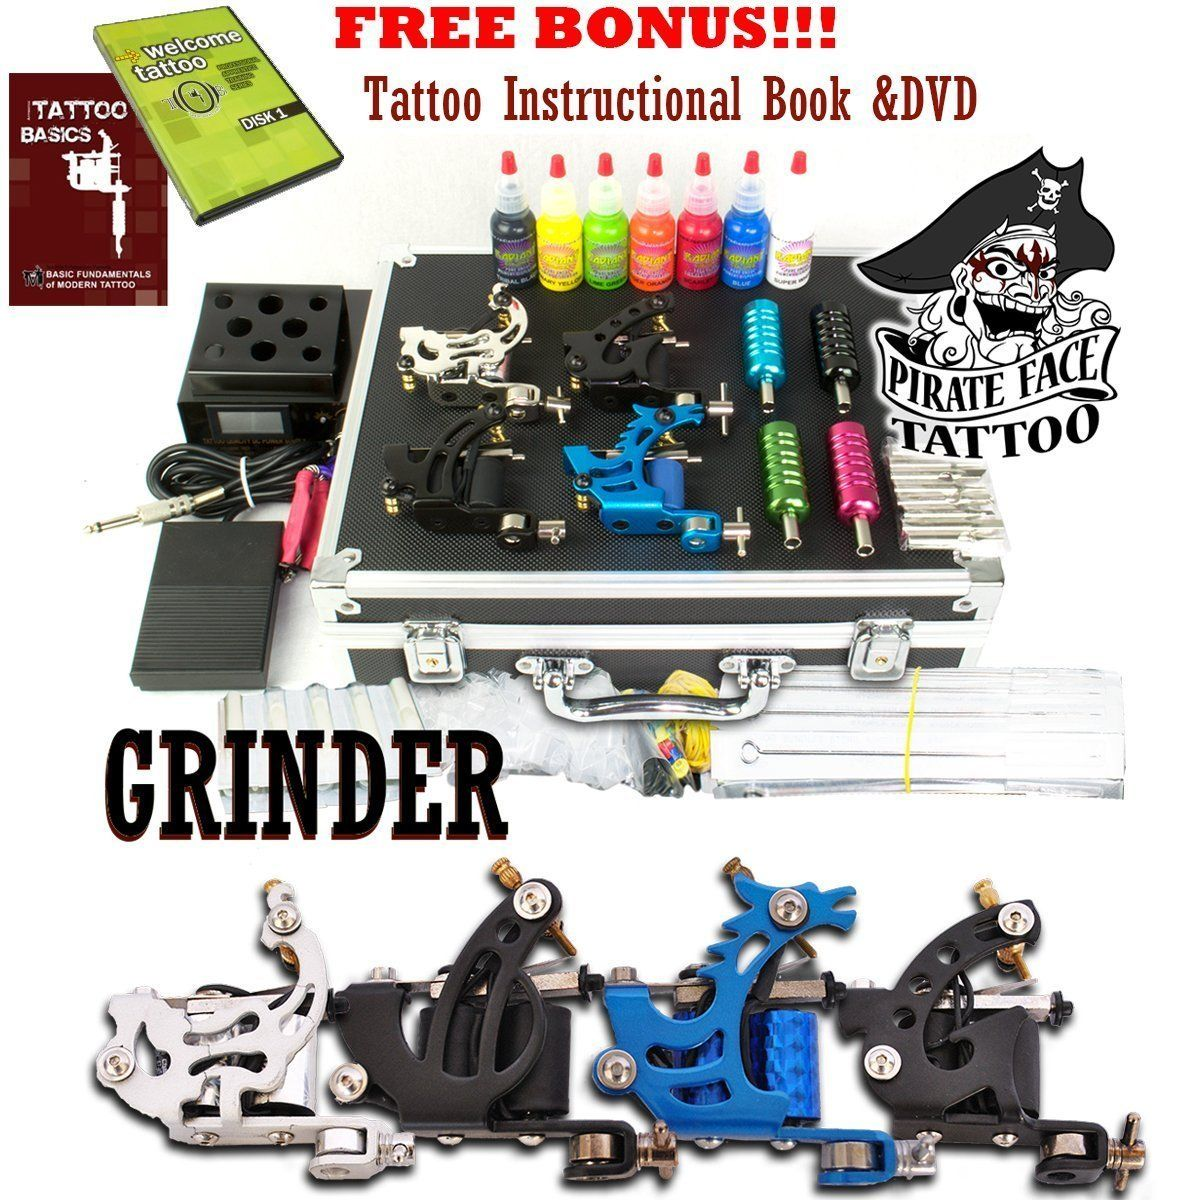 Amazon Com Grinder Complete Tattoo Kit By Pirate Face Tattoo 4 Tattoo Machine Guns Power Supply 7 Tattoo Kits Coil Tattoo Machine Best Tattoo Machines